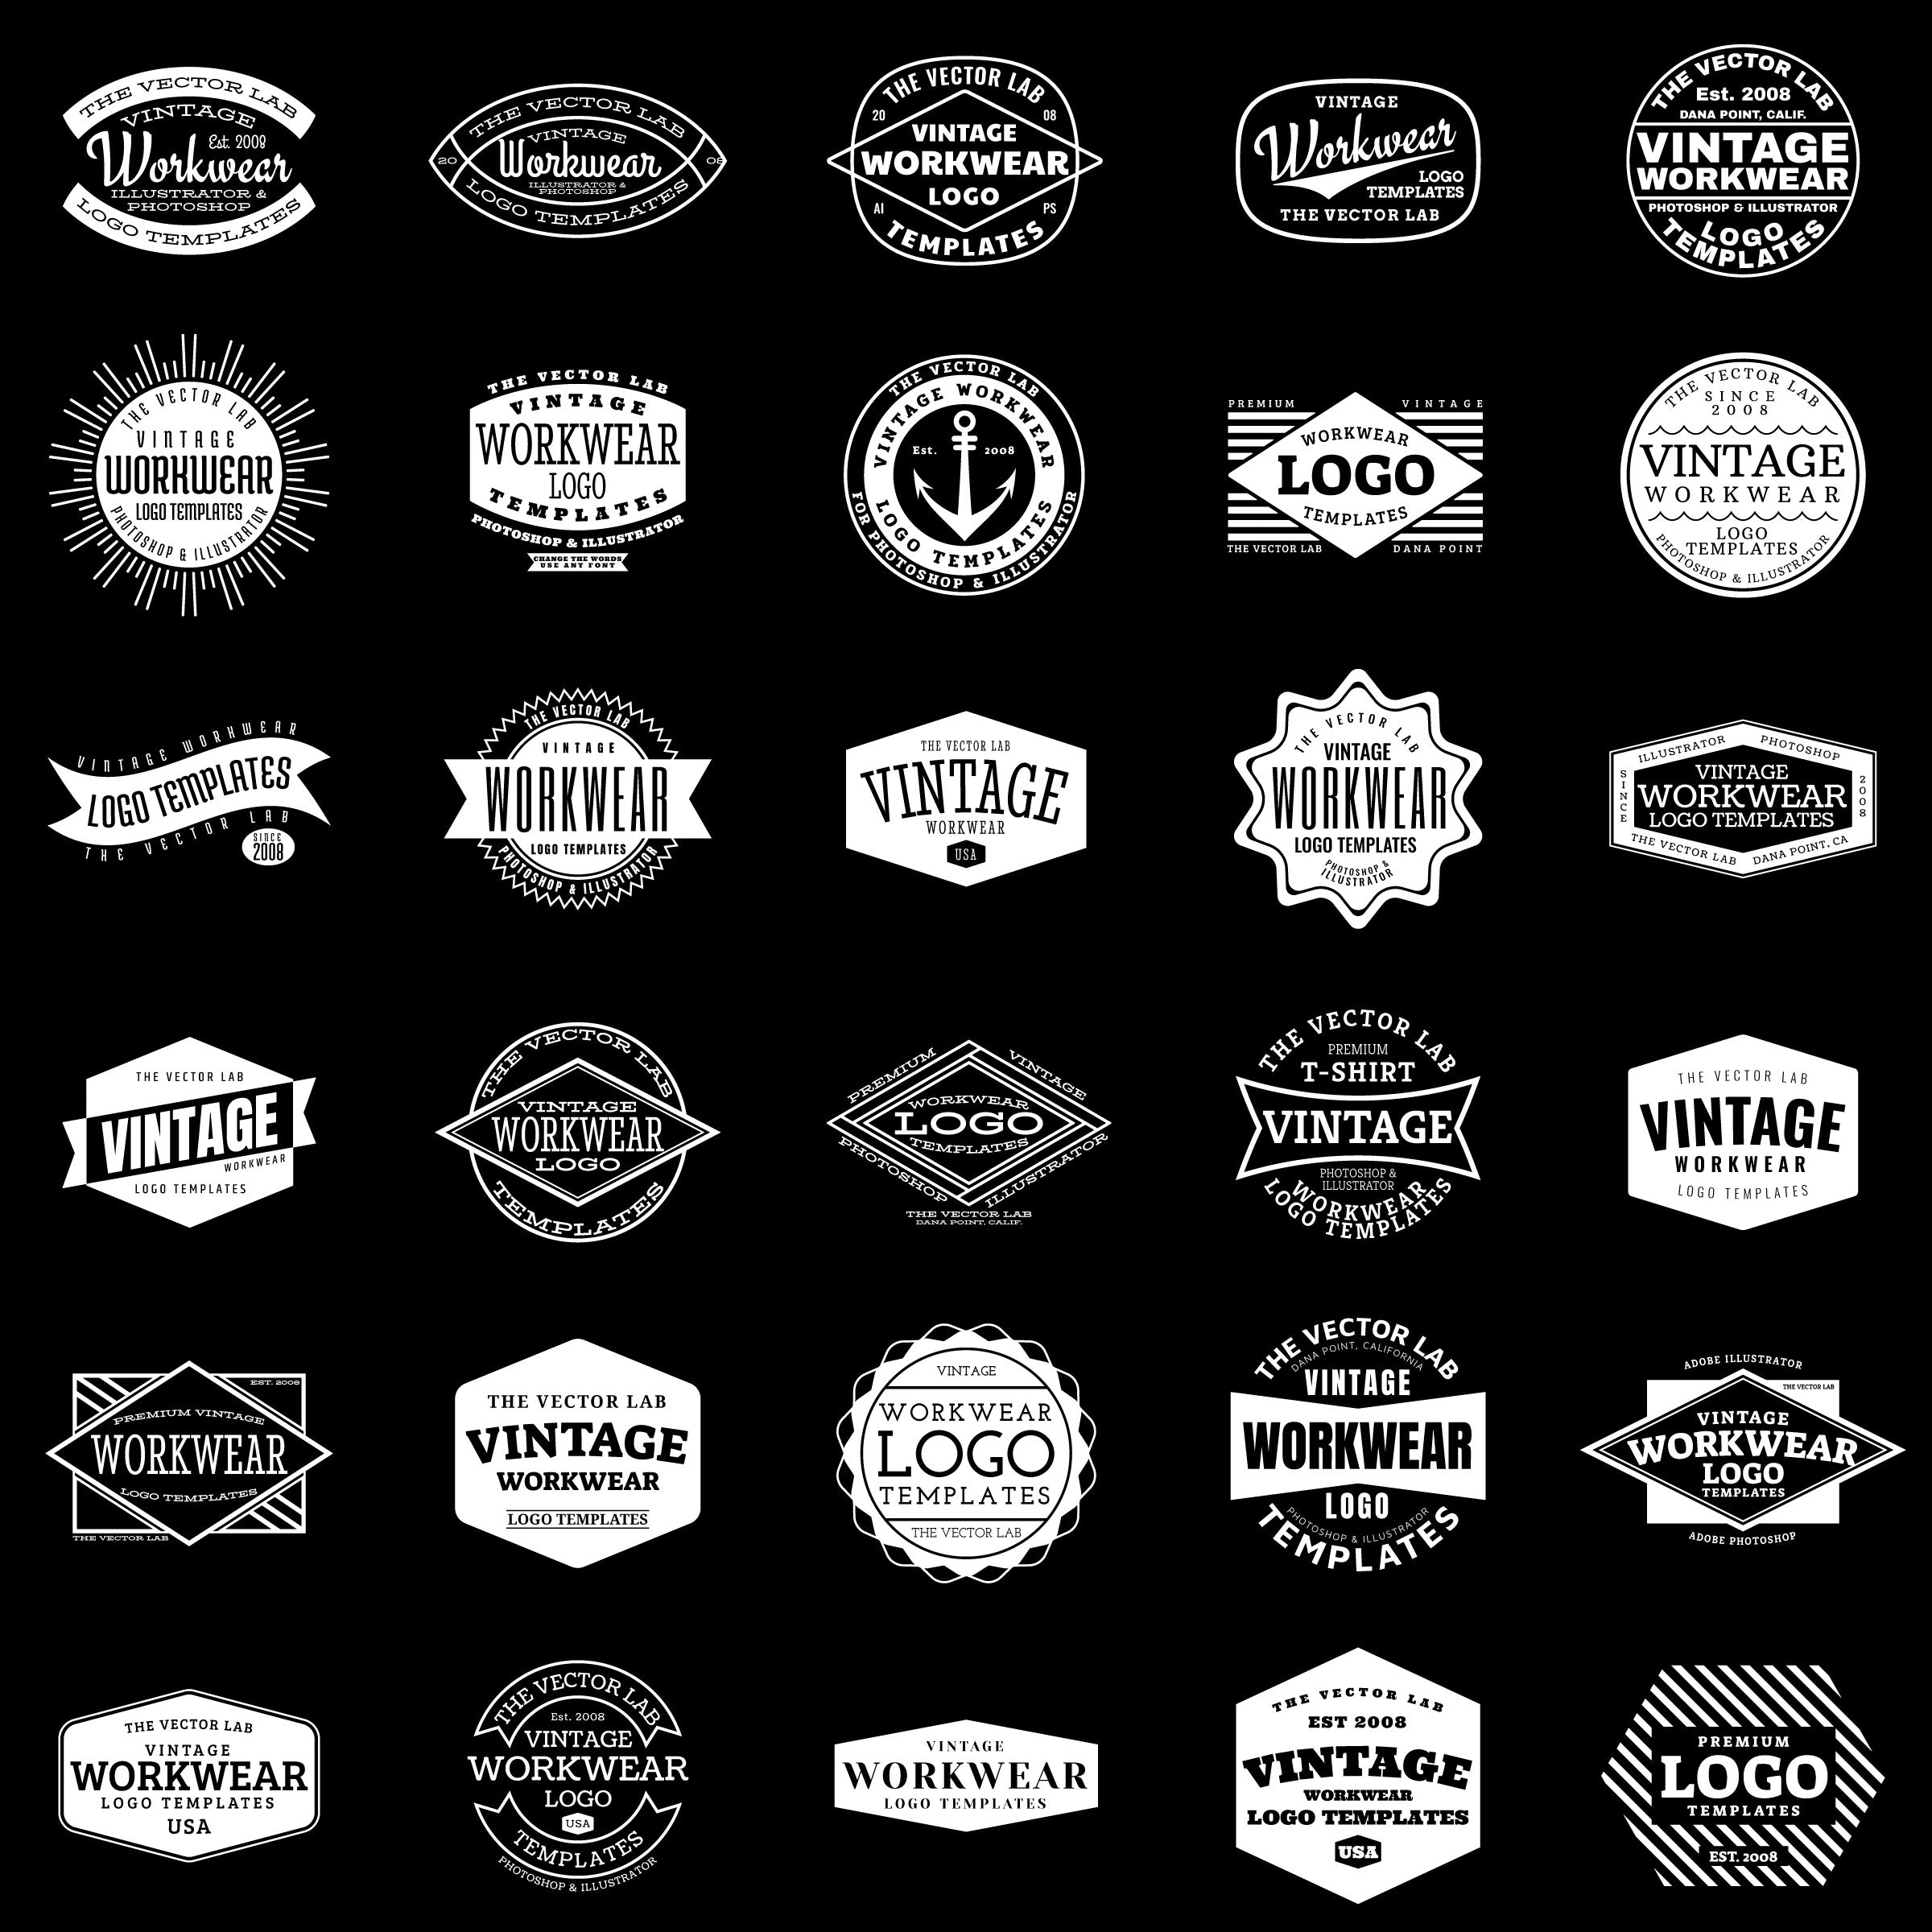 Vintage Workwear Logo Templates - TheVectorLab